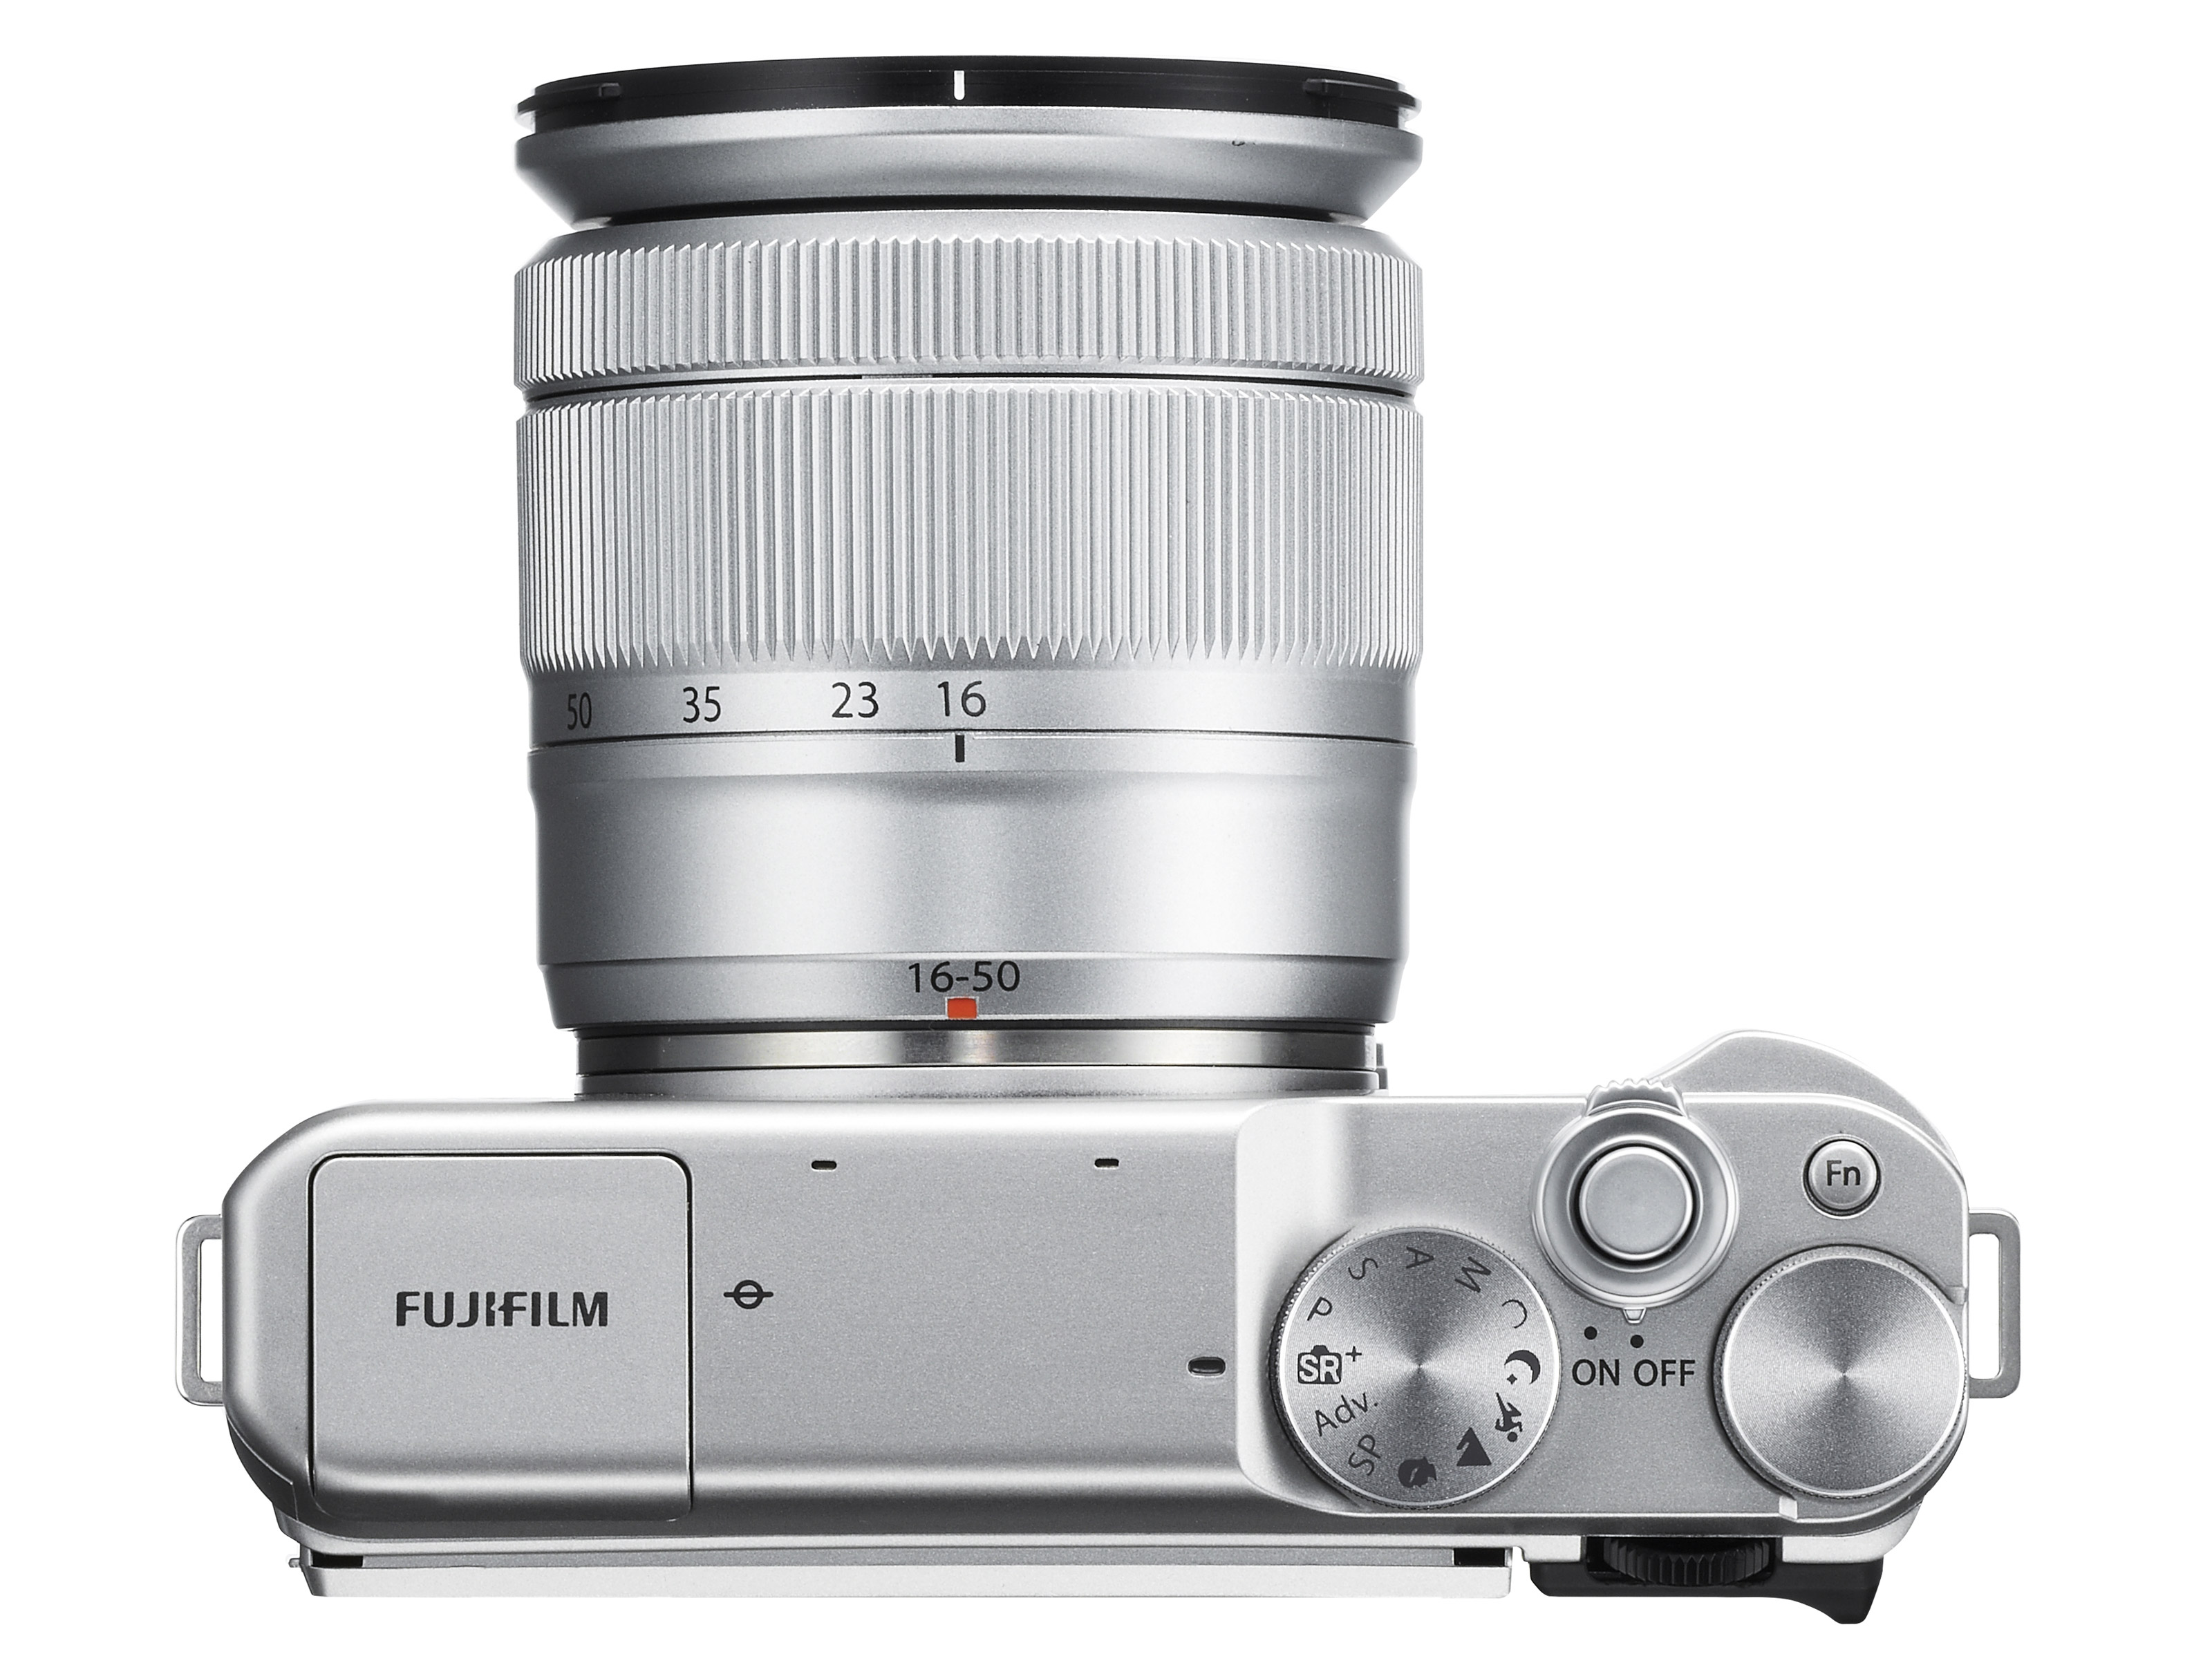 Fujifilm X A10 Specifications And Opinions Juzaphoto T20 With 16 50mm Silver 50 230mm Instax Share Sp 2 The Is A Mirrorless Camera Aps C 15x Sensor Megapixels Manufactured From 2016 Range Of Sensitivities Including Iso